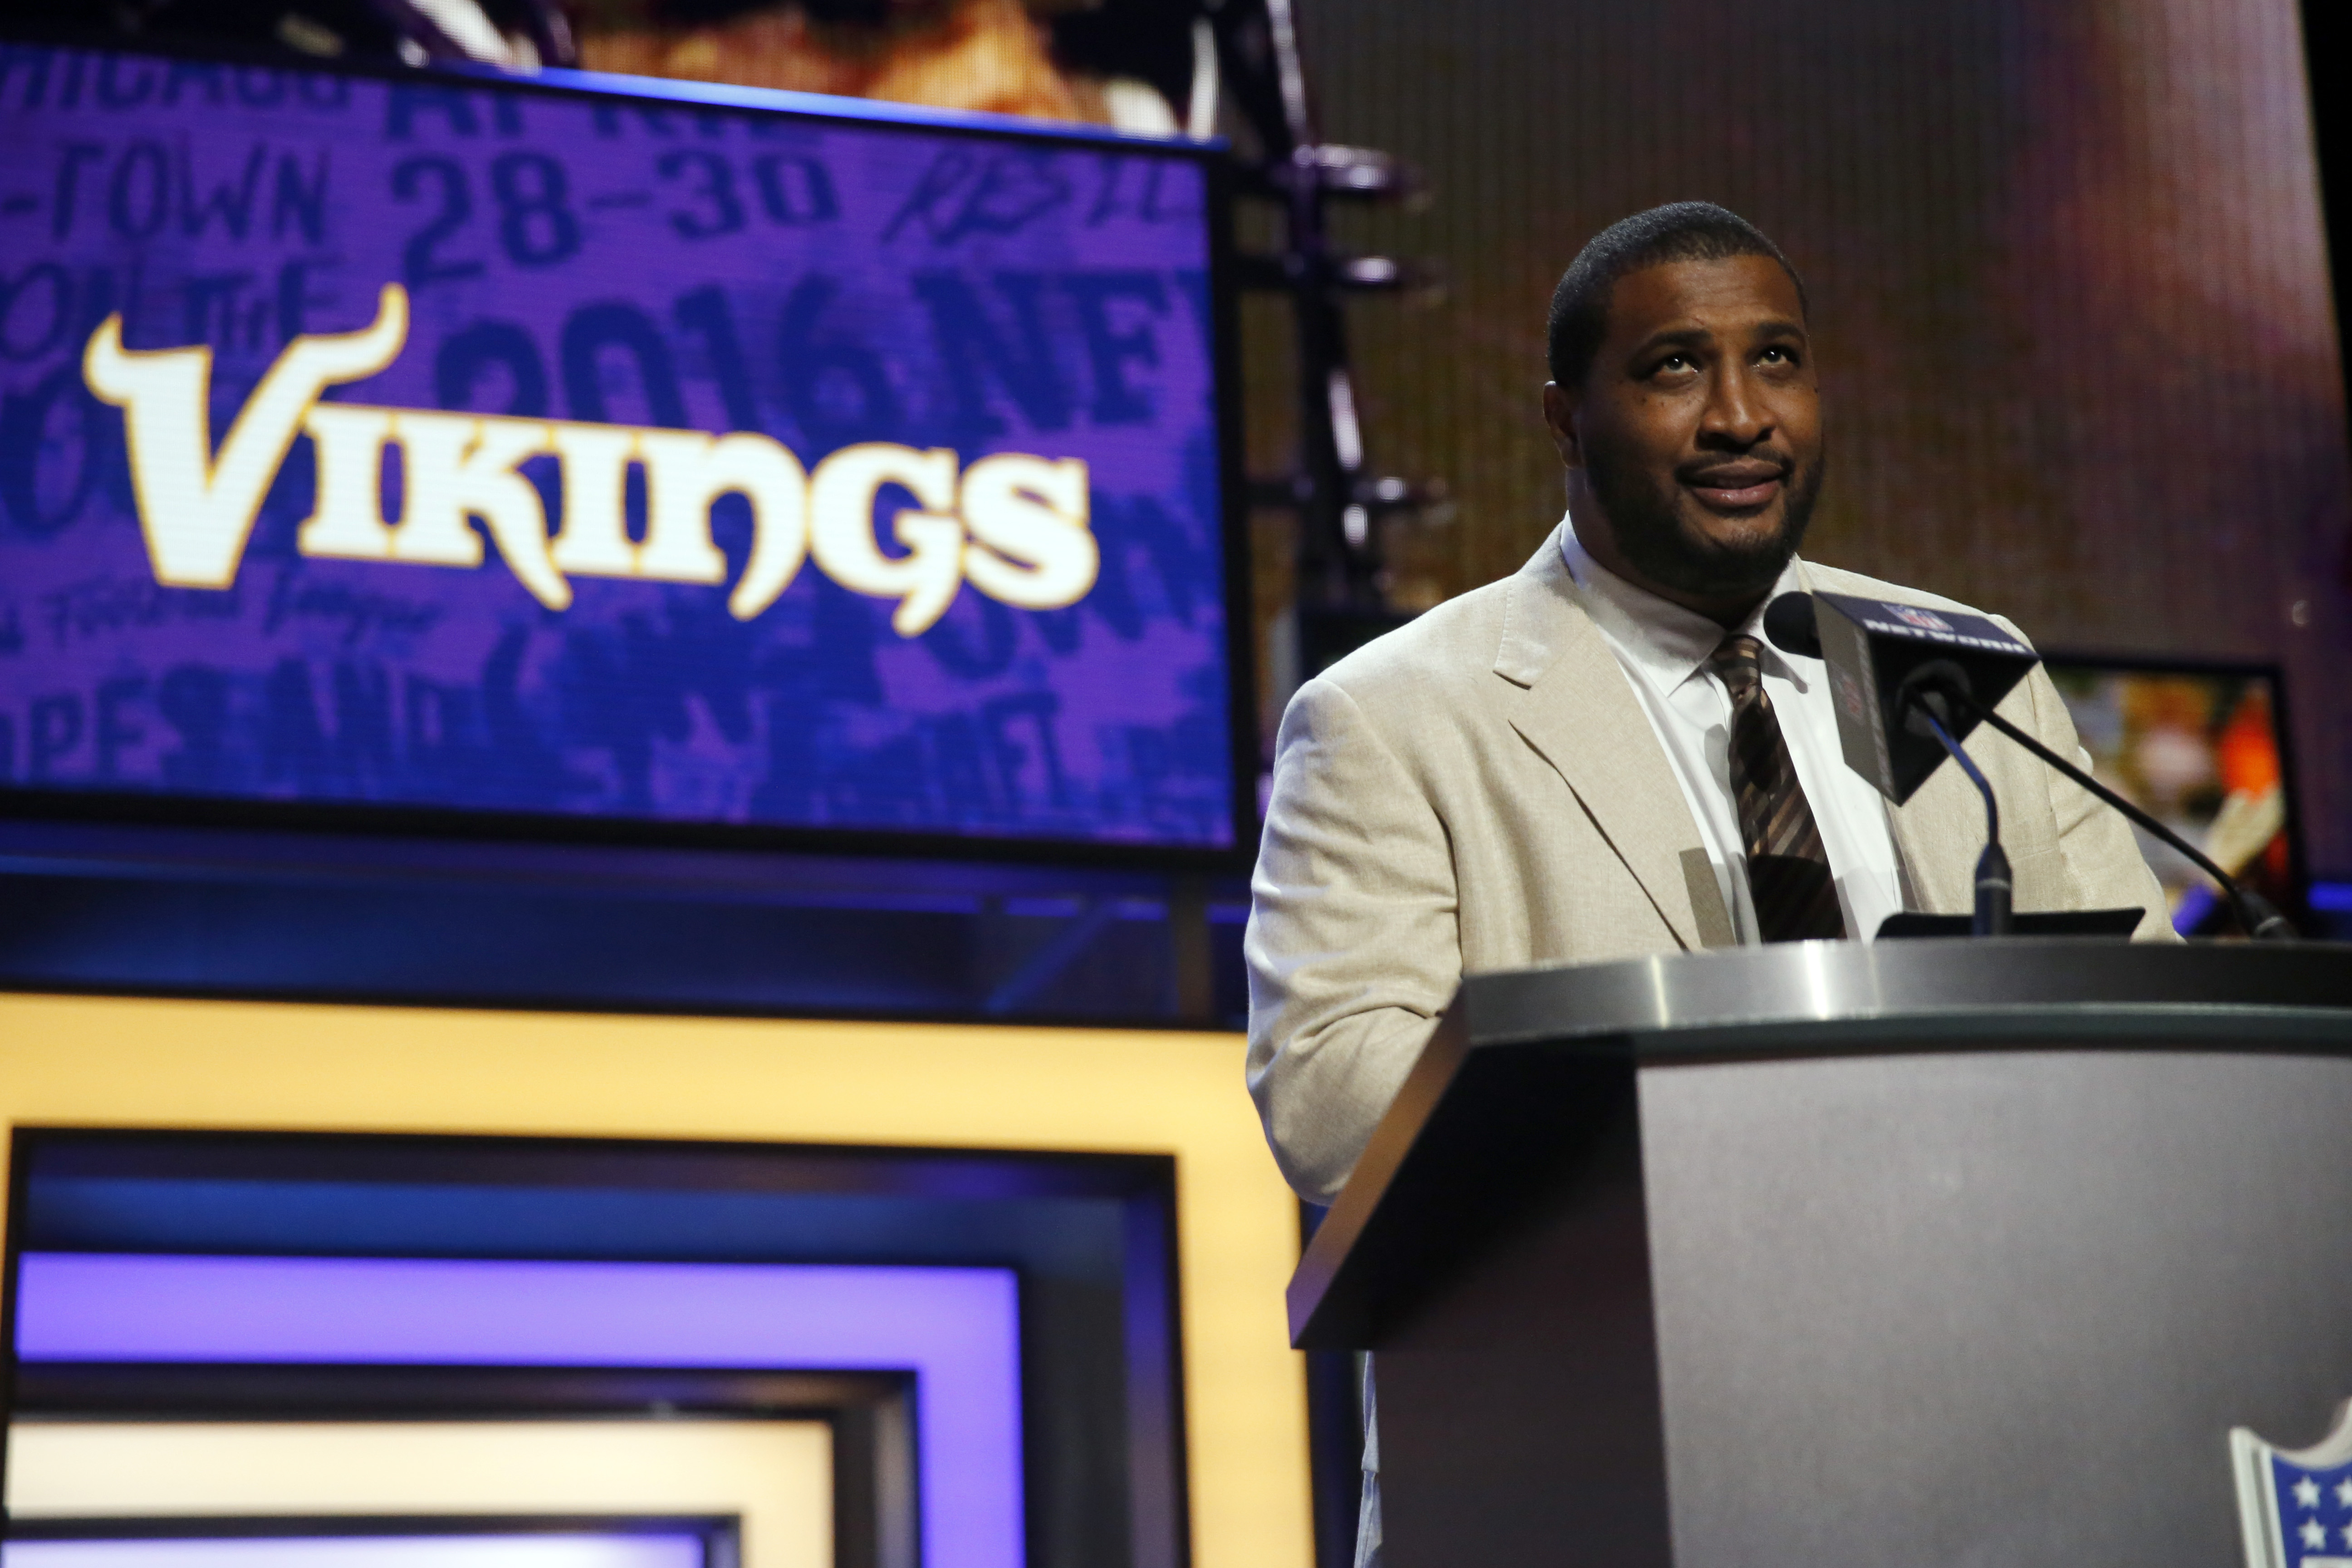 Former NFL player Daunte Culpepper announces that the Minnesota Vikings selects Clemsons Mackensie Alexander as the 54th pick in the second round of the 2016 NFL football draft, Friday, April 29, 2016, in Chicago. (AP Photo/Charles Rex Arbogast)